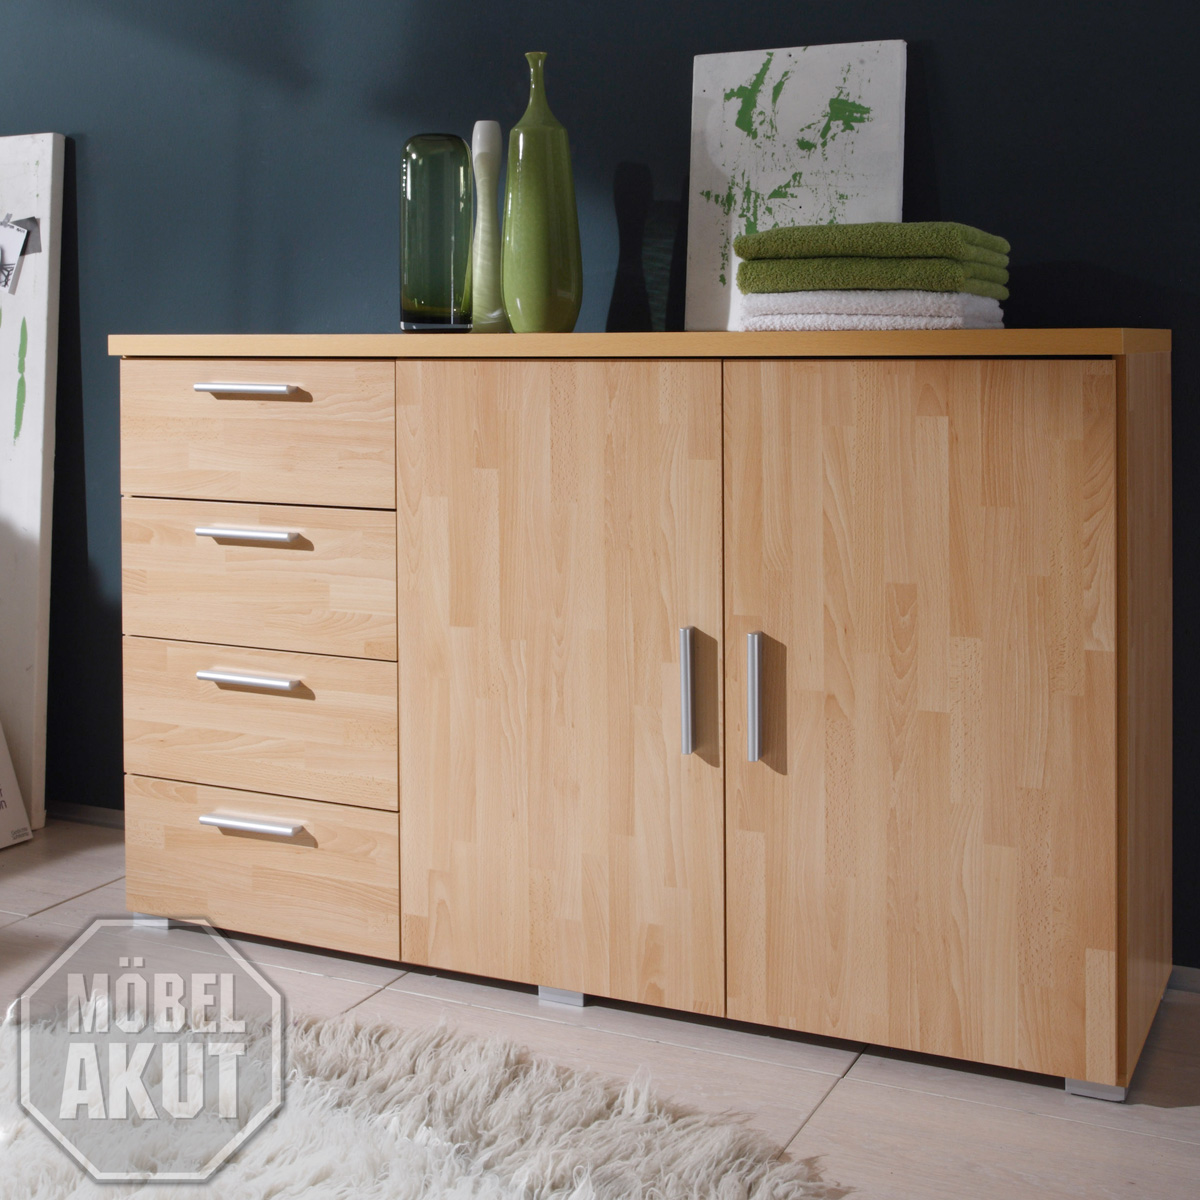 kommode sidra sideboard buche parkett neu ebay. Black Bedroom Furniture Sets. Home Design Ideas